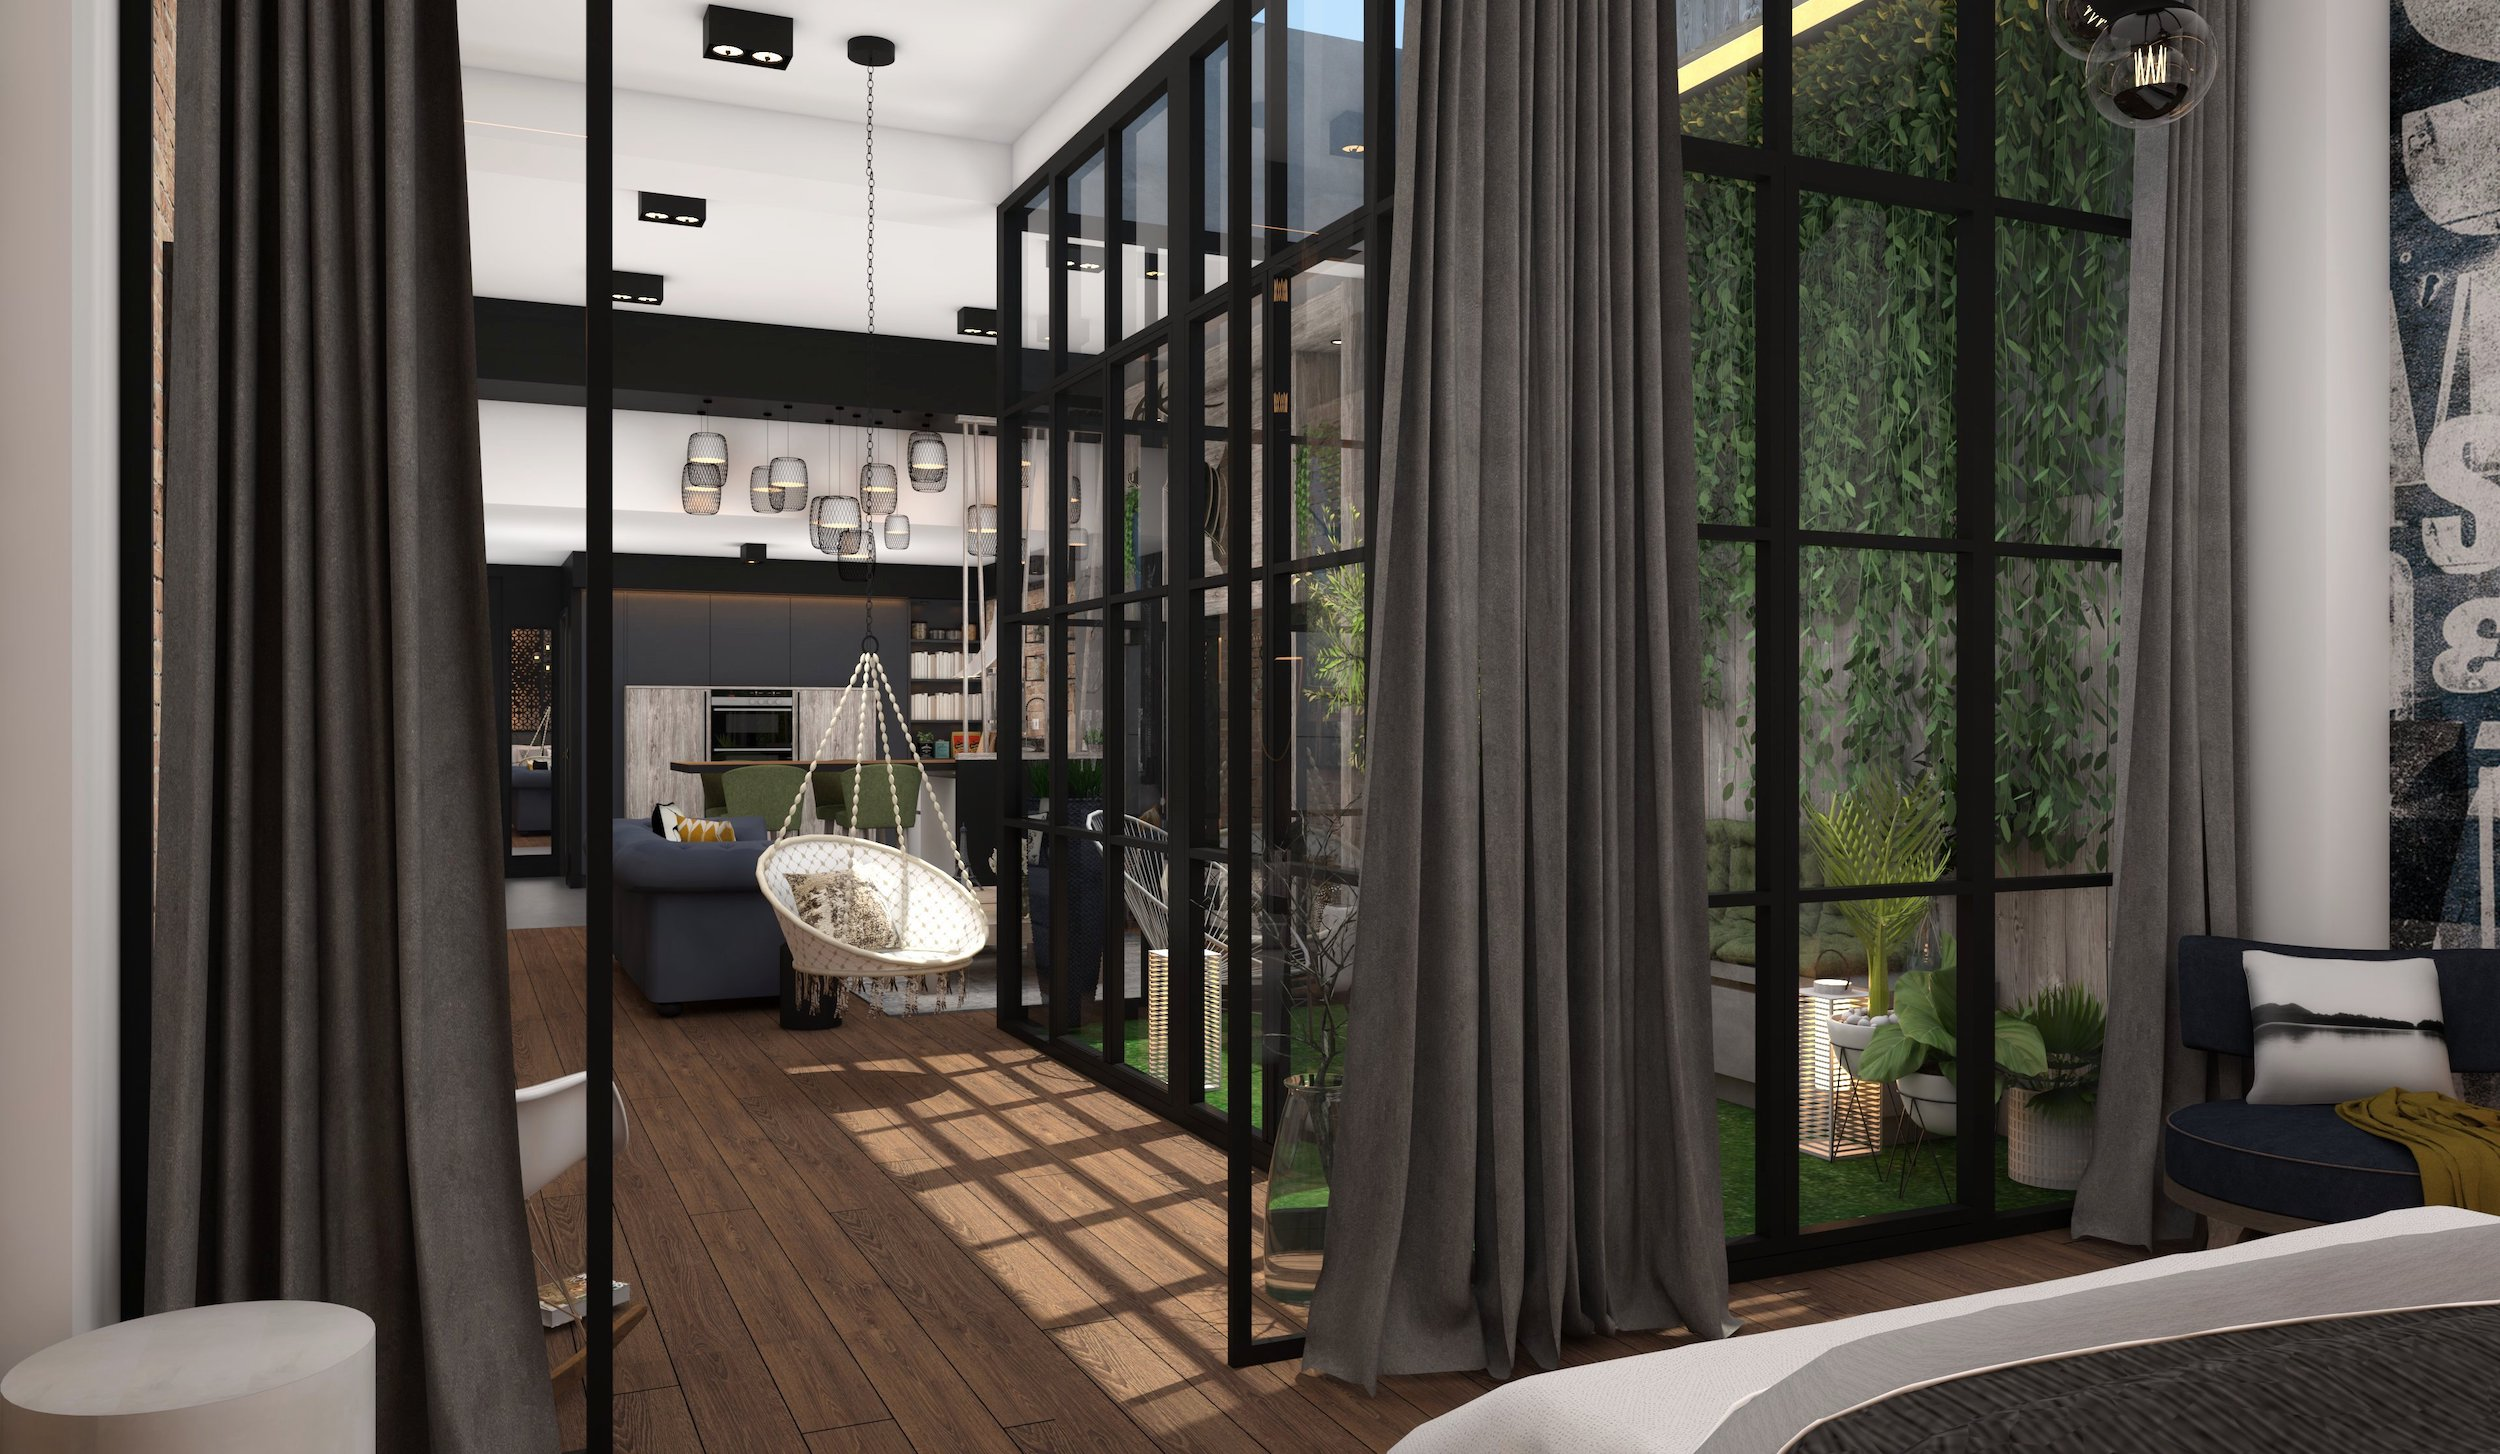 Renovation-architecture-loft-94-small-1